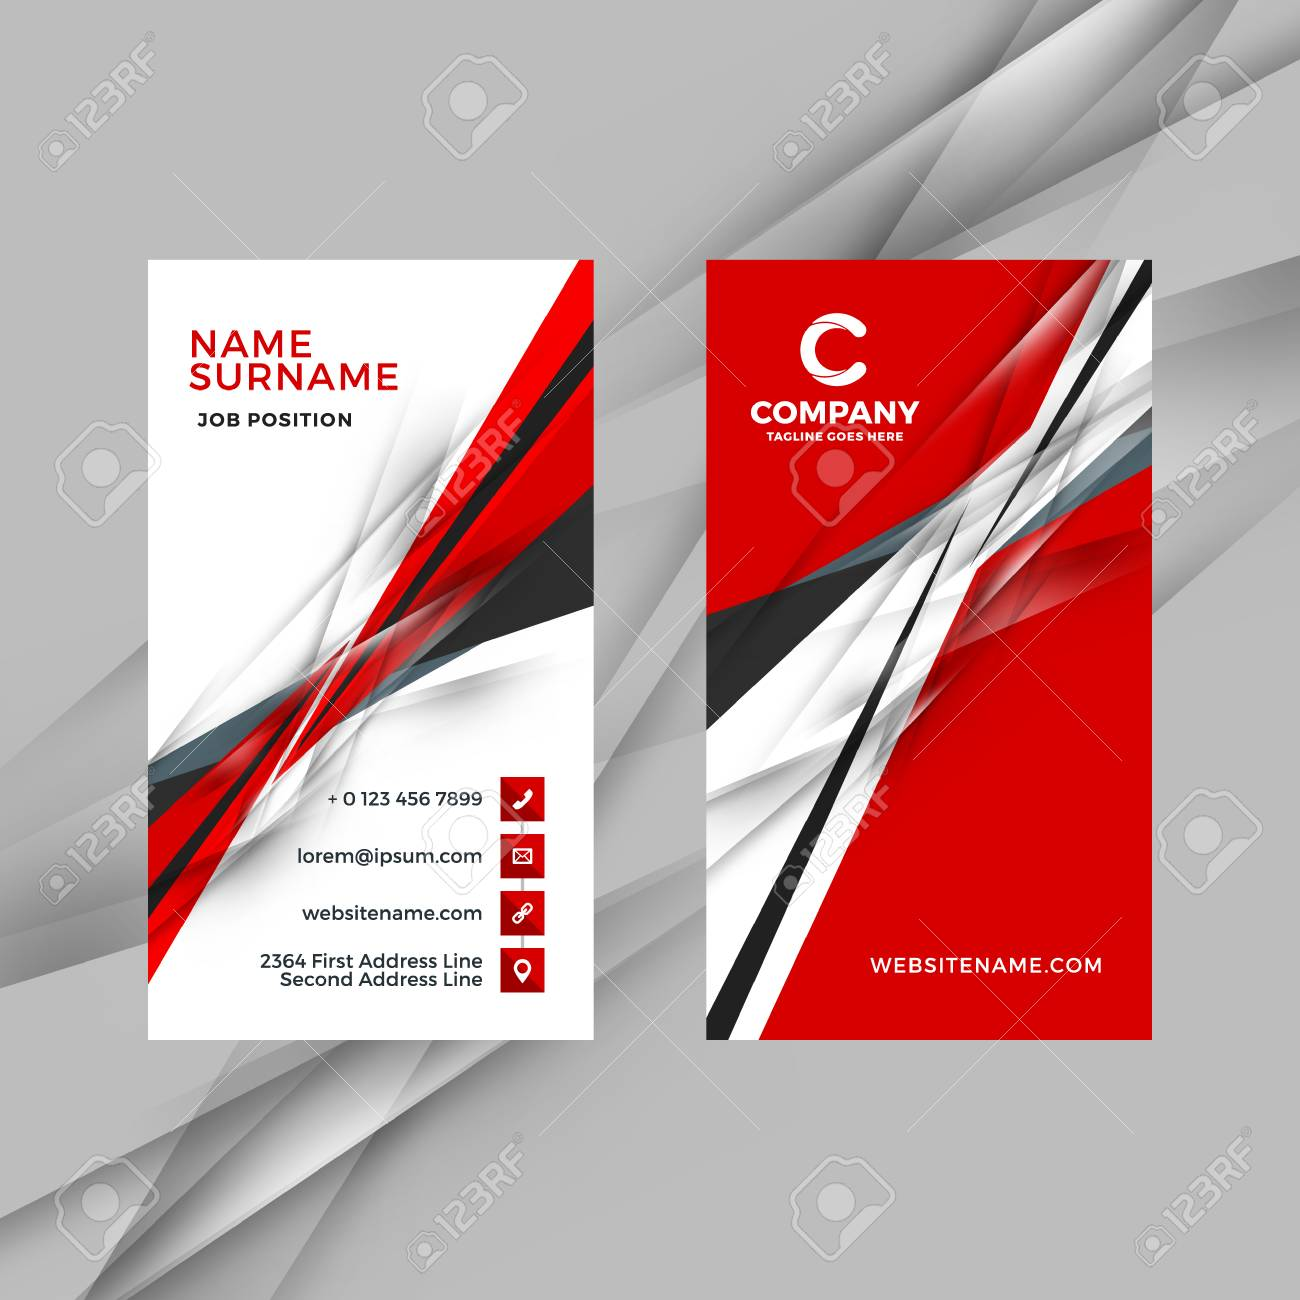 Vertical double-sided red and black business card template. Vector illustration. Stationery design - 84144655